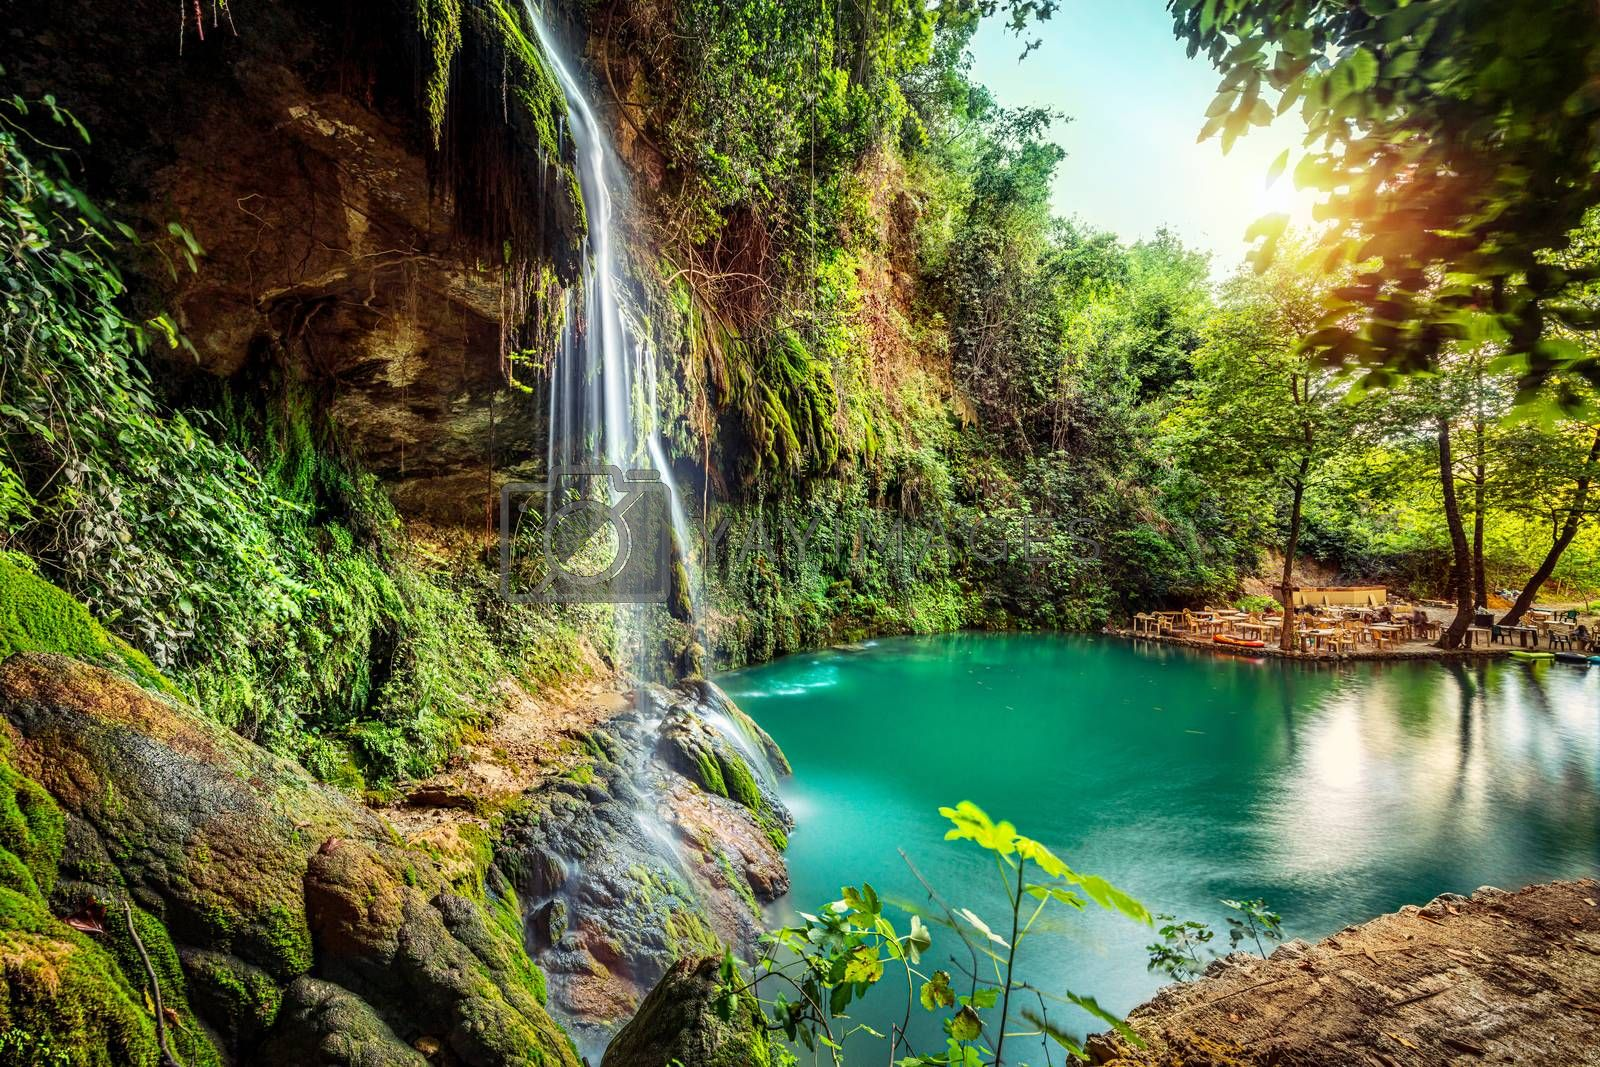 Peaceful view on the waterfall and the fresh greenery around the picturesque lagoon, Baakleen, Lebanon